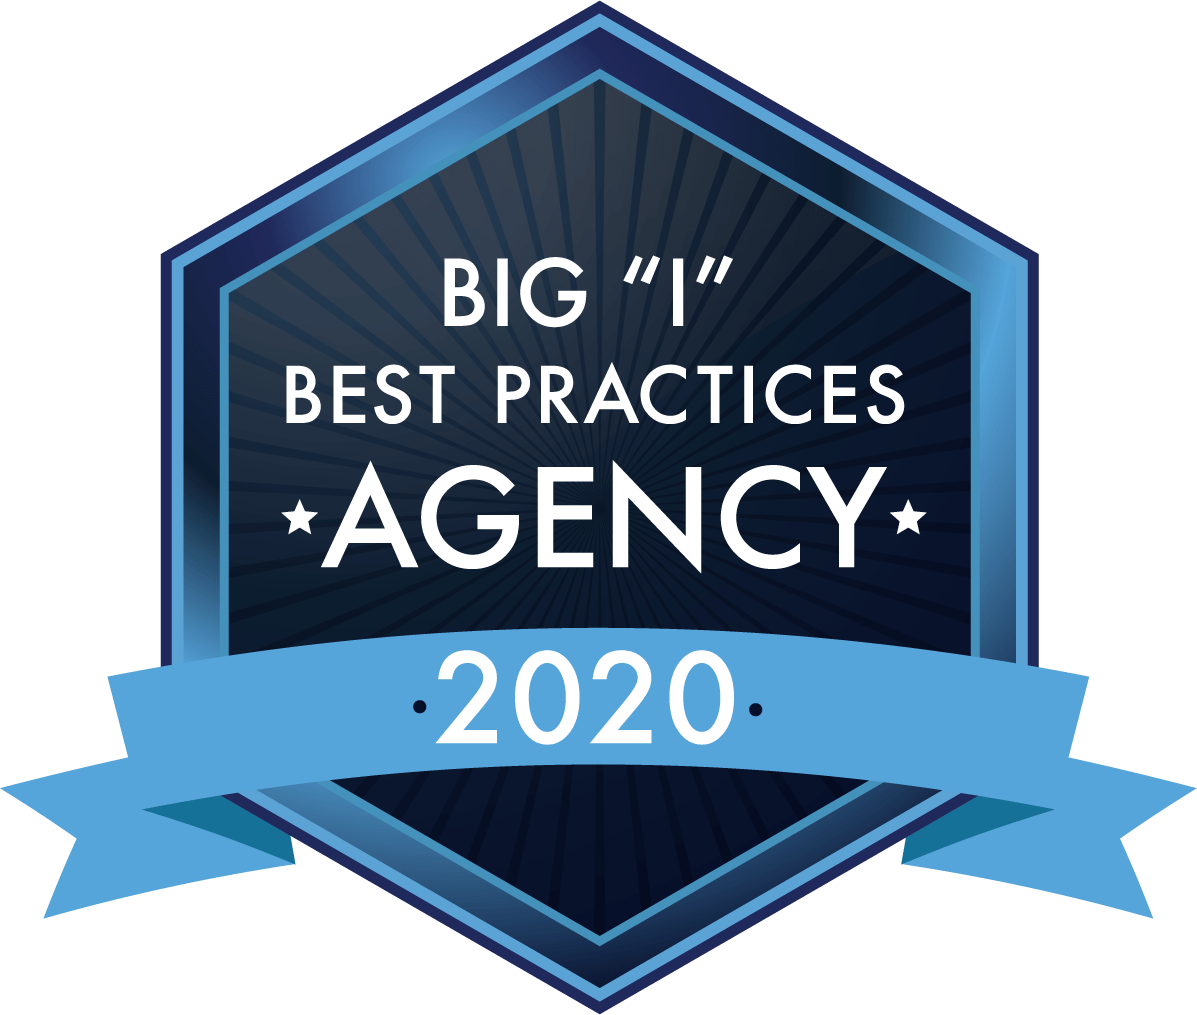 2020 Best Practices Award Logo